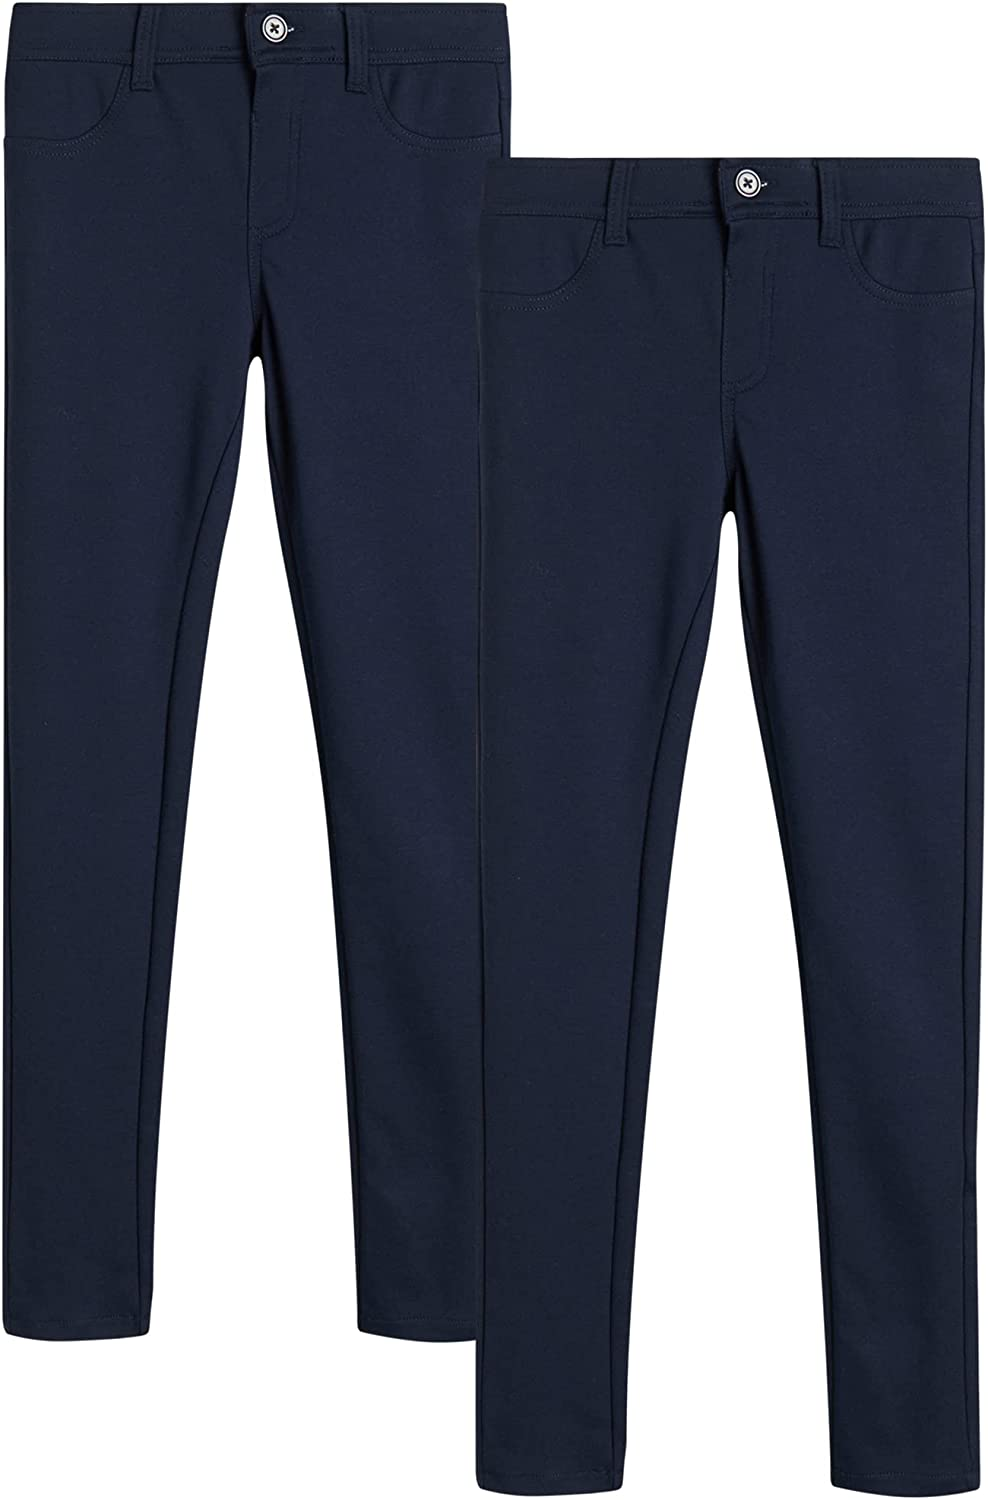 U.S. Polo Special sale item Assn. Girls' School Uniform Pack Ponte Now free shipping Pants 2 - Stret